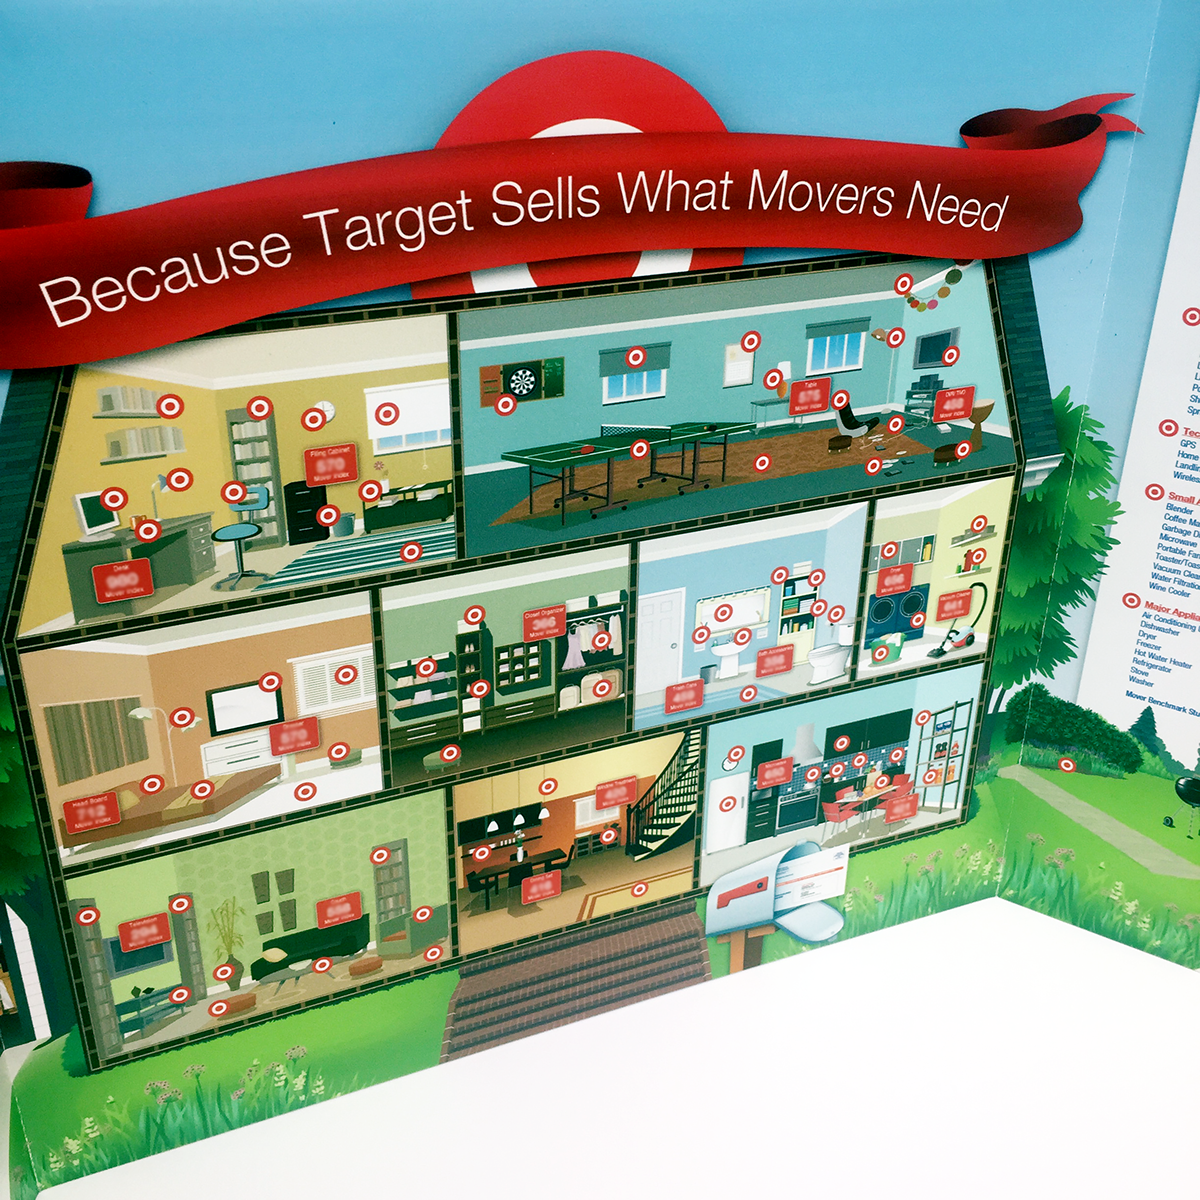 infographic,poster,Lifestage Marketing,mover marketing,sales,research,Data,Bi-fold,print